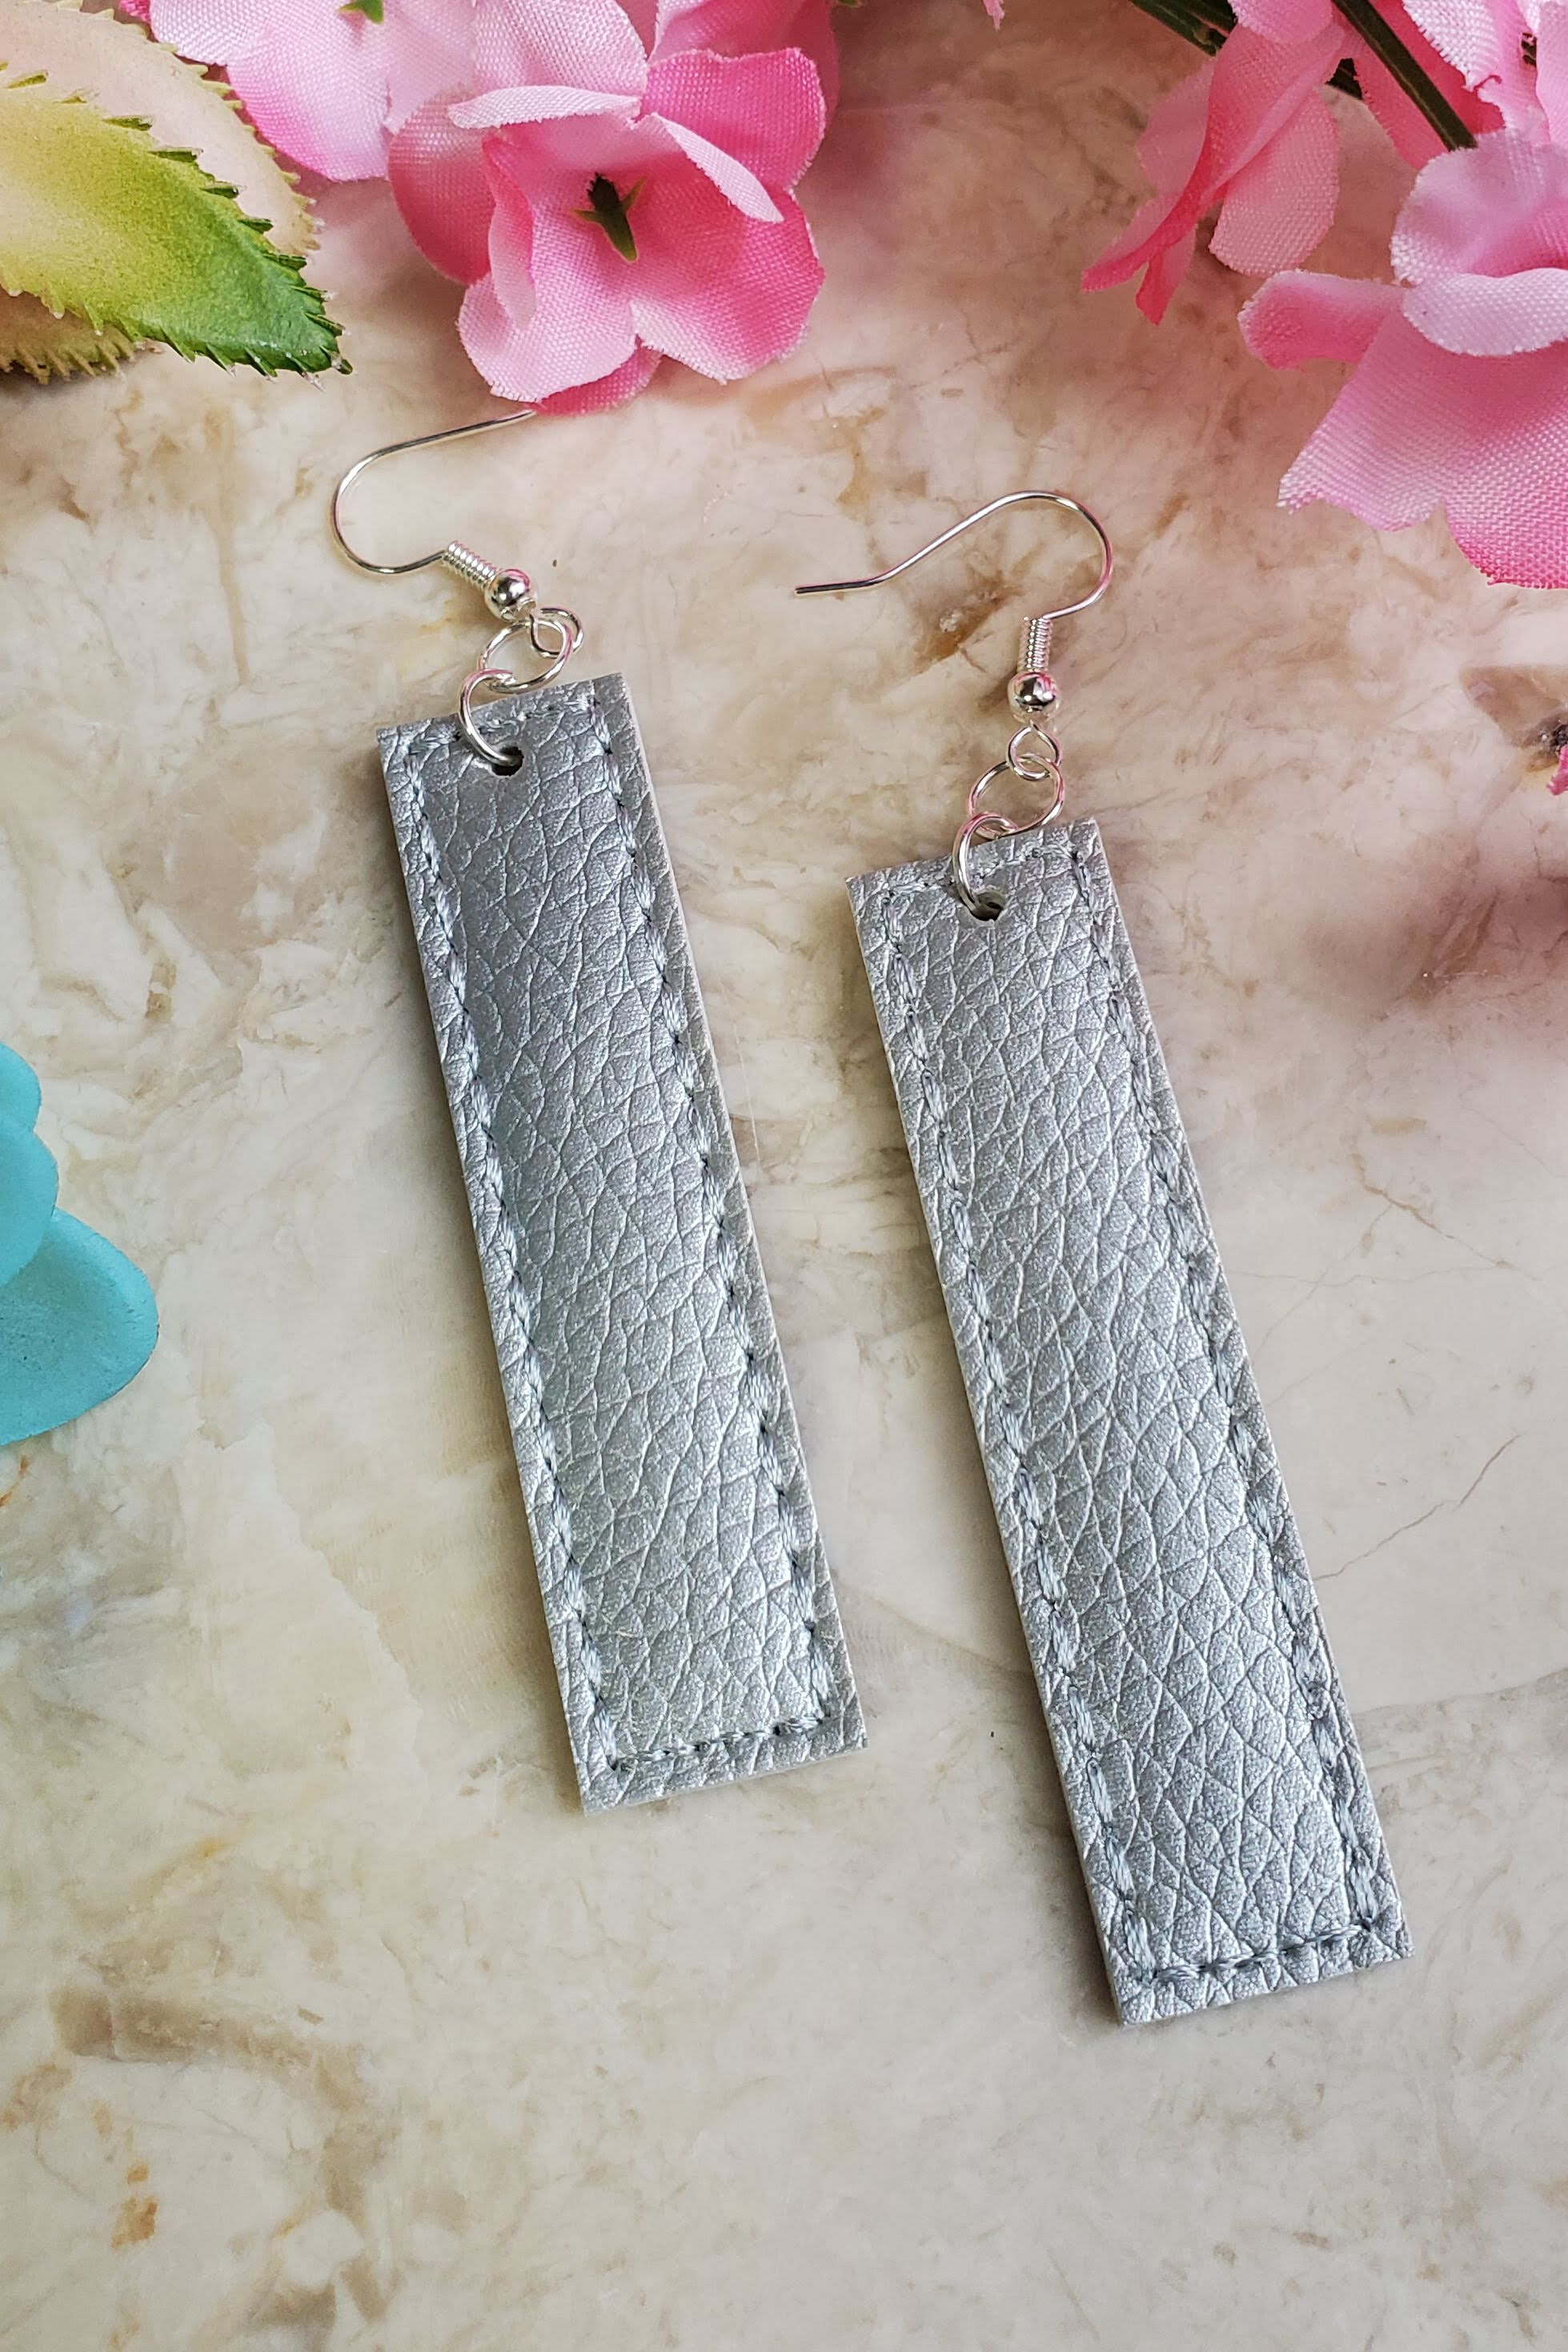 Silver Bar Handcrafted22 Earrings B-225